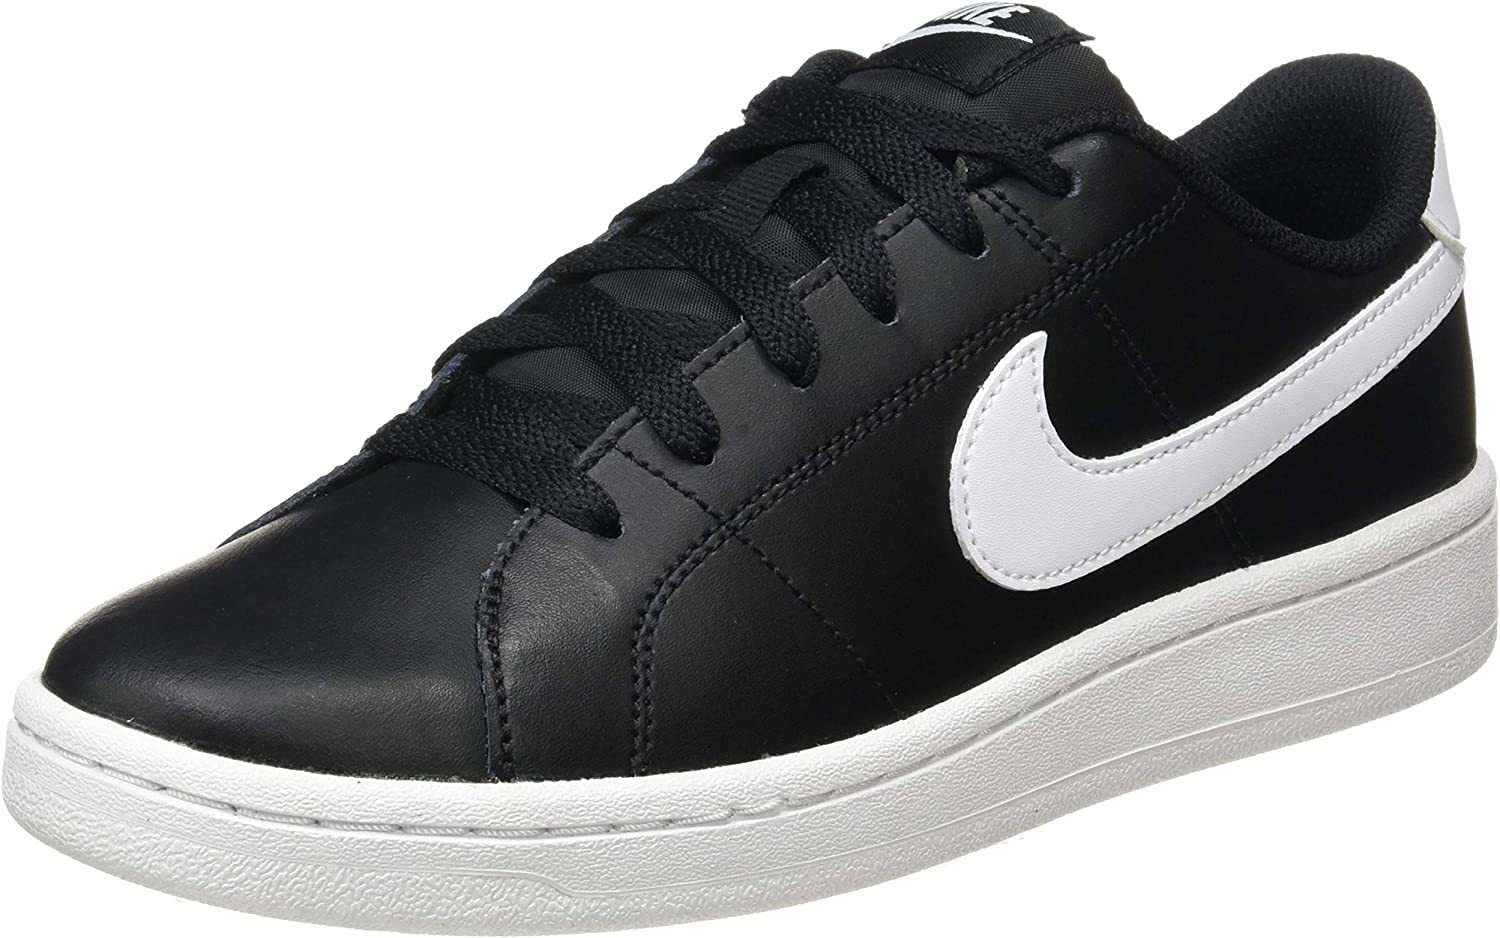 Nike Women's WMNS Court Royale 2 White Tennis 6 Black Deluxe Shoe New products world's highest quality popular